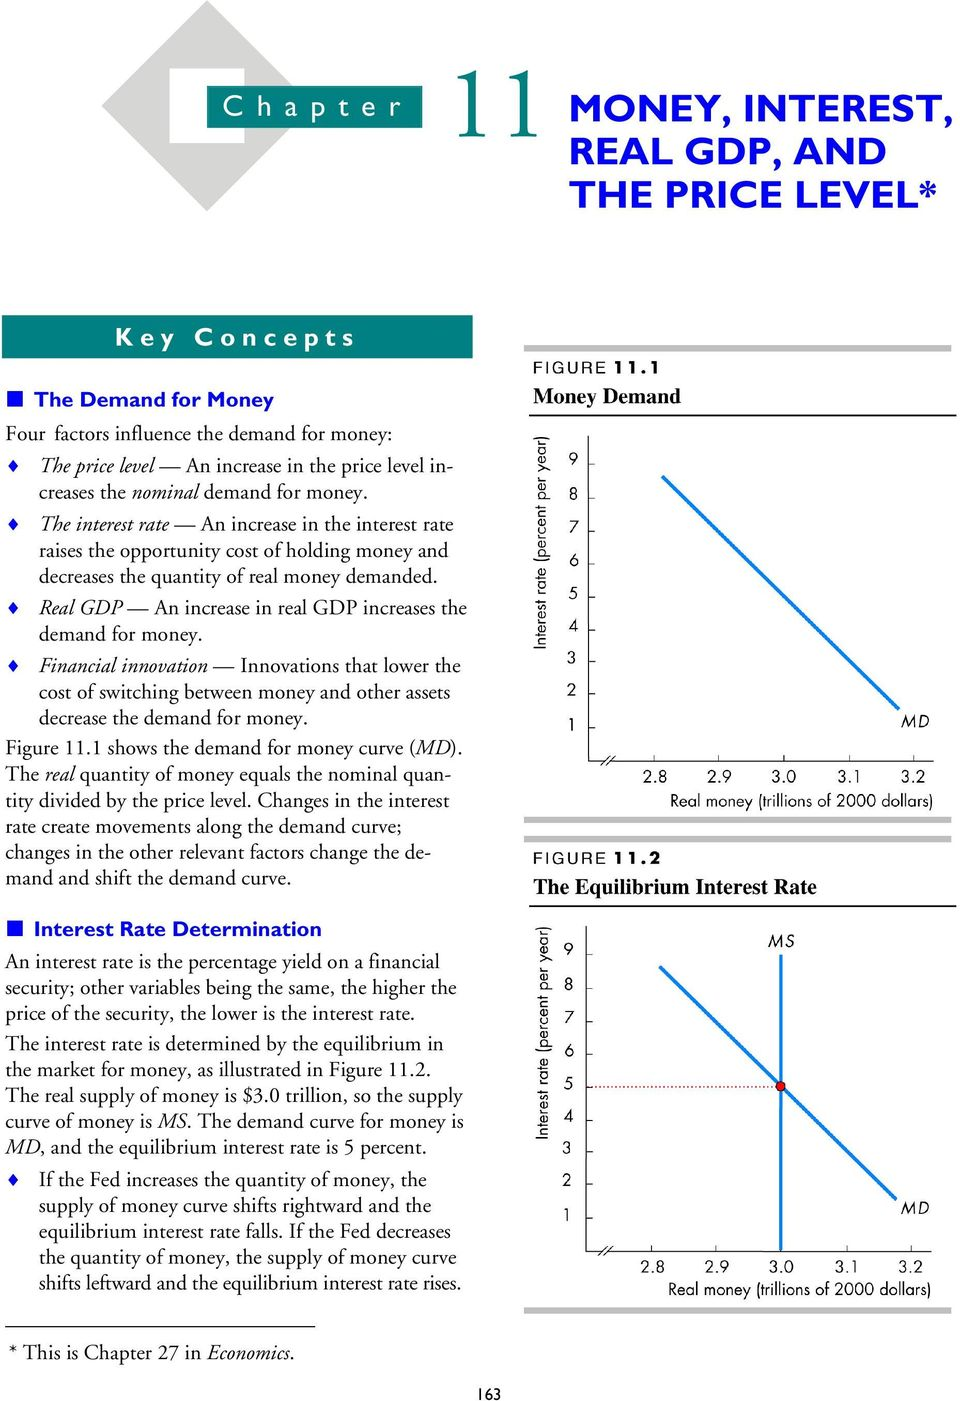 Real GDP An increase in real GDP increases the demand for Financial innovation Innovations that lower the cost of switching between money and other assets decrease the demand for Figure 11.